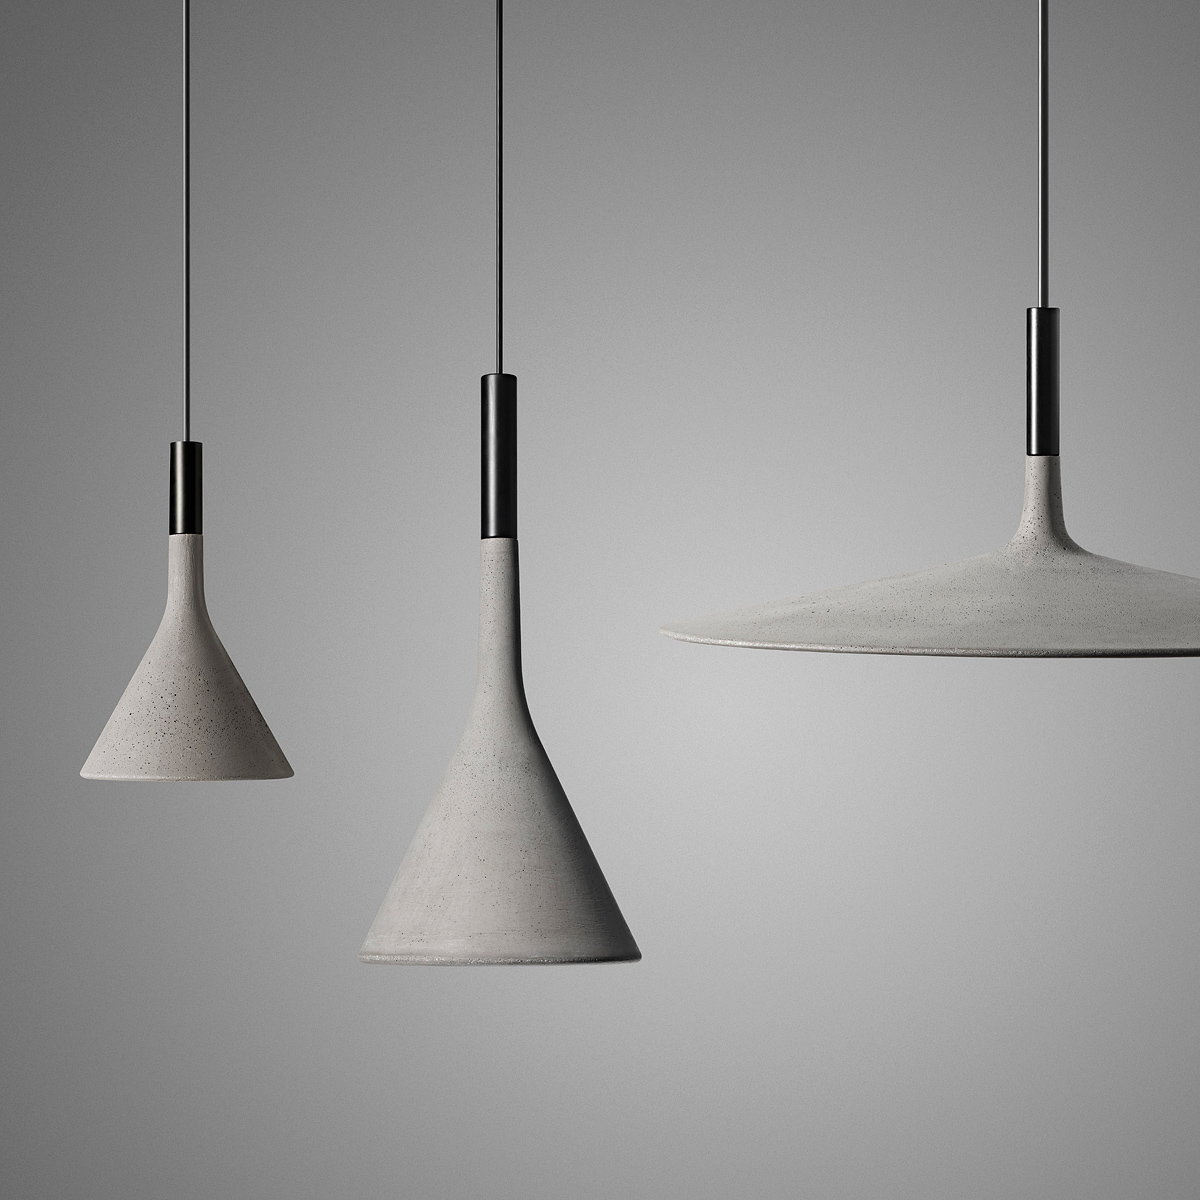 Foscarini Aplomb Large by Lucidi and Pevere